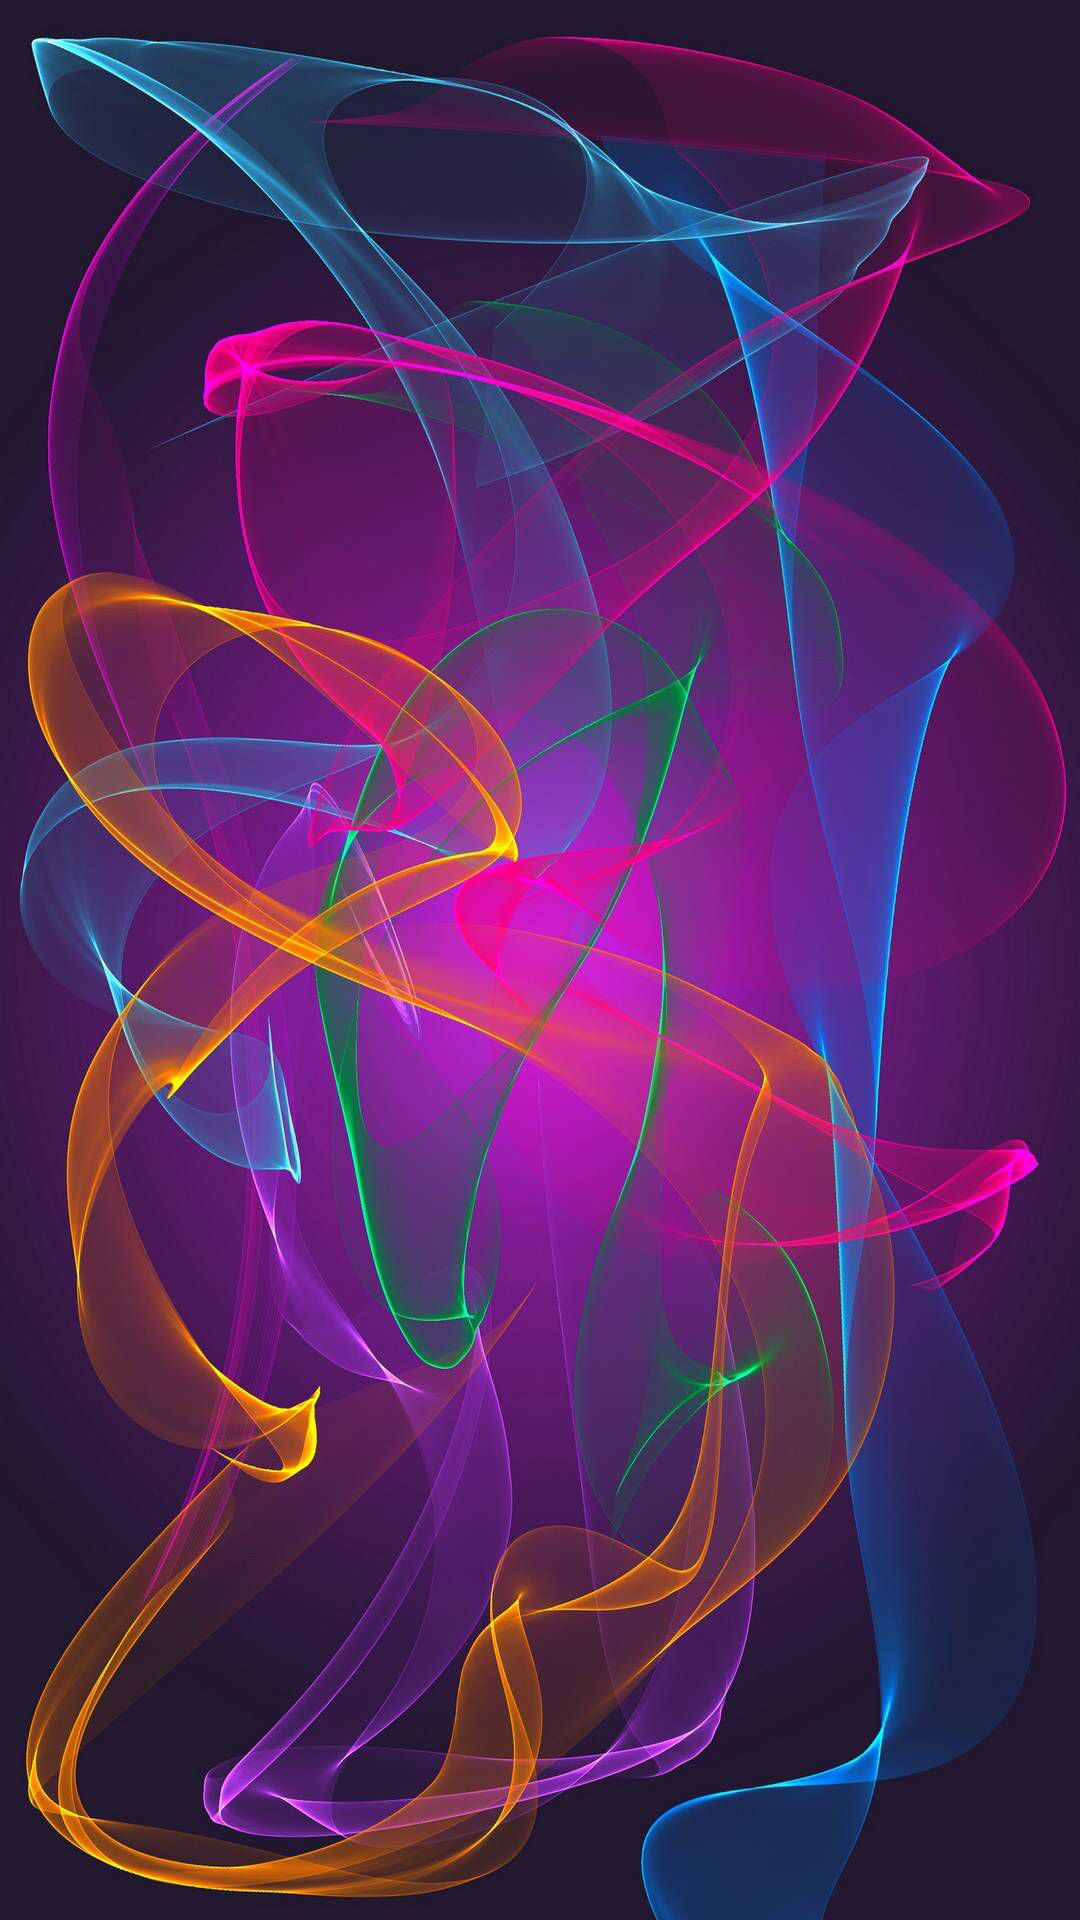 Neon Colors Not Quite As Bright Abstract Iphone Wallpaper Iphone 6 Plus Wallpaper Wallpaper Iphone Neon